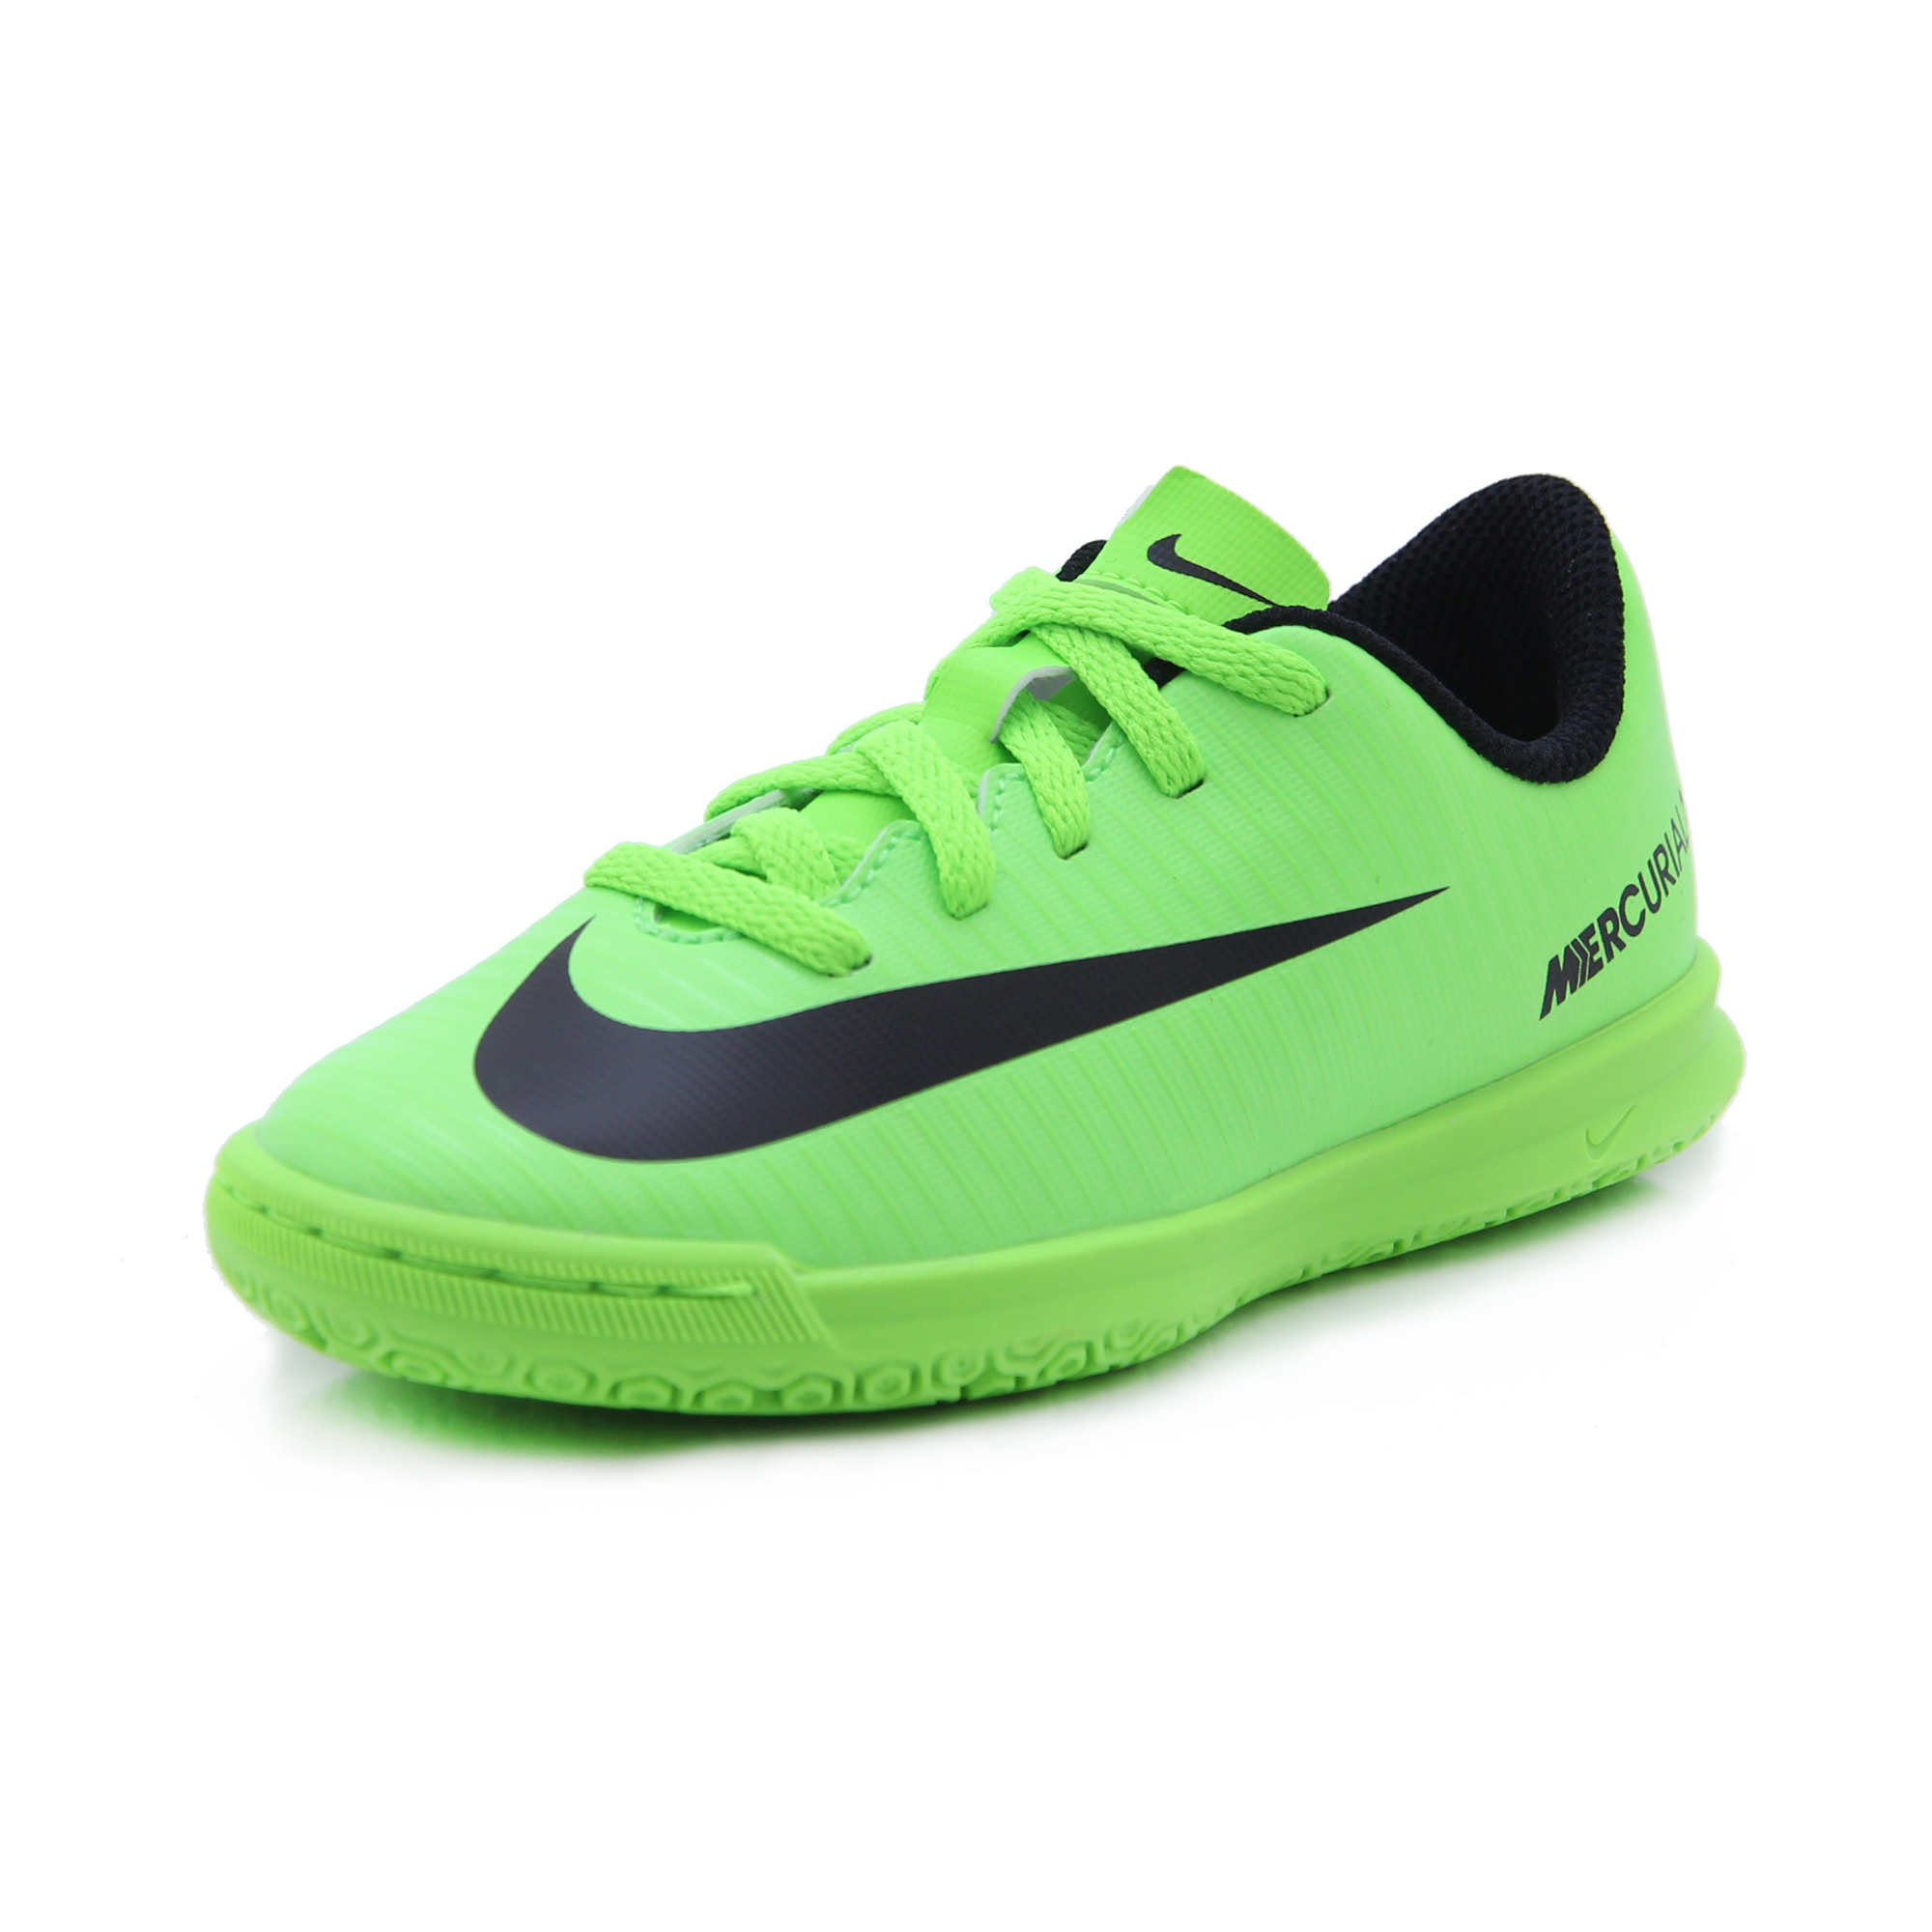 NIKE MERCURIALX VORTEX III IC 831953-303 JR